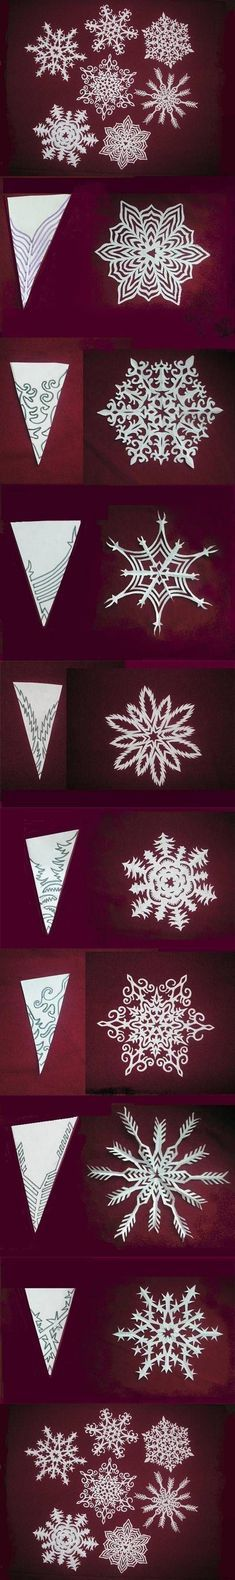 DIY Christmas Decorations – Paper snowflakes!...